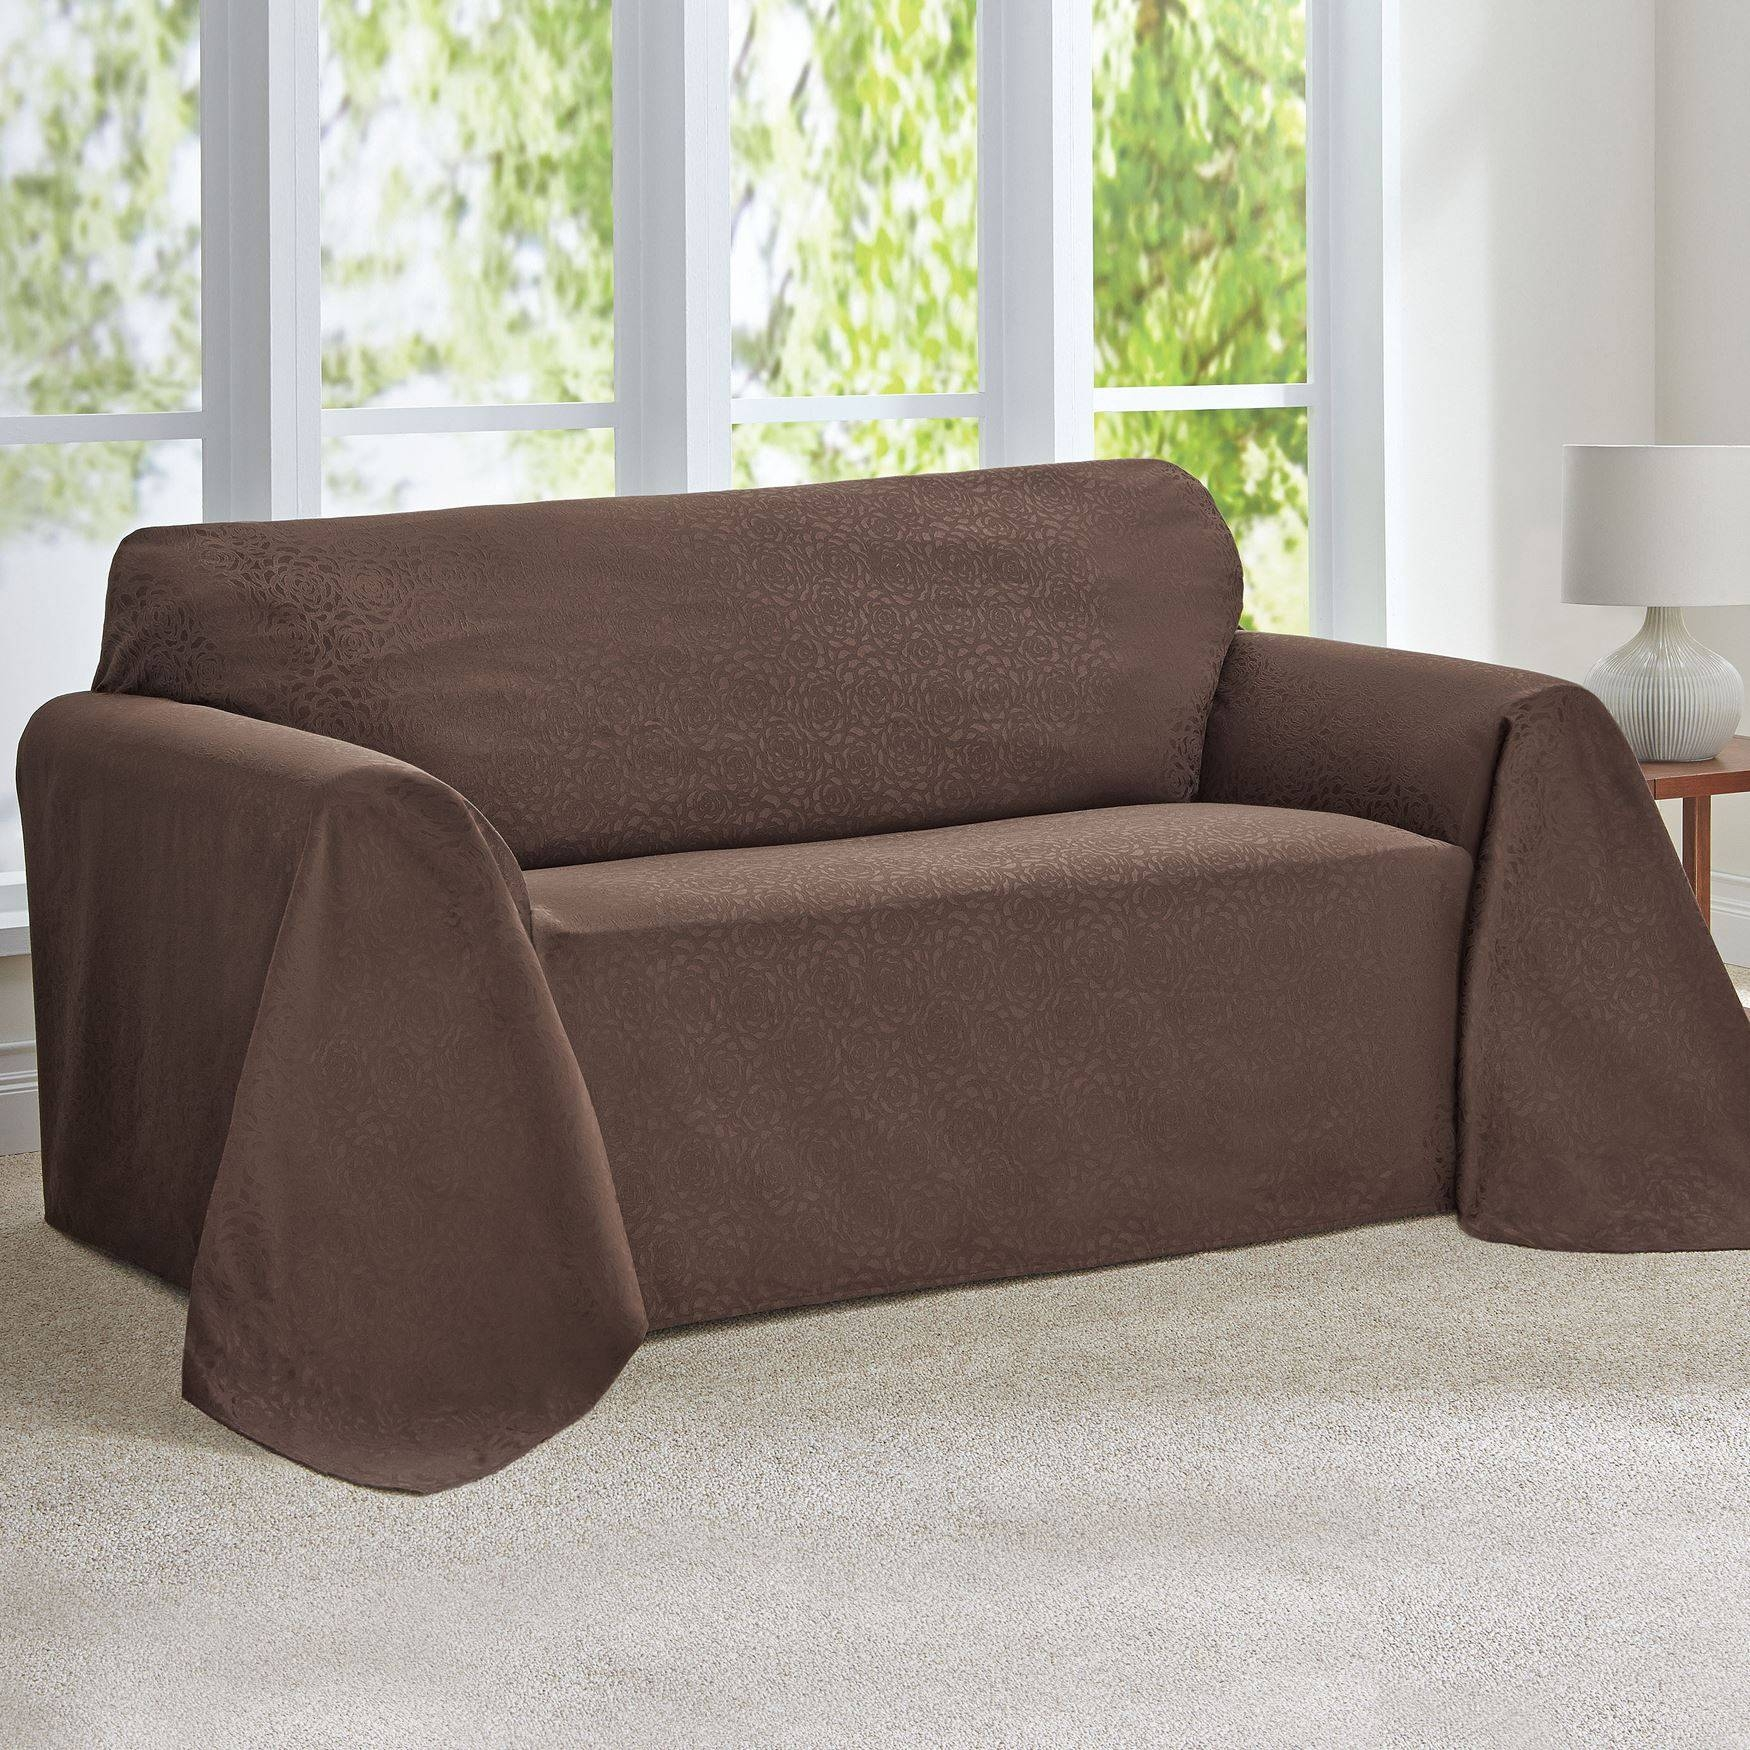 Furniture: Couch Covers At Walmart To Make Your Furniture Stylish with Slipcovers for Chairs and Sofas (Image 7 of 15)